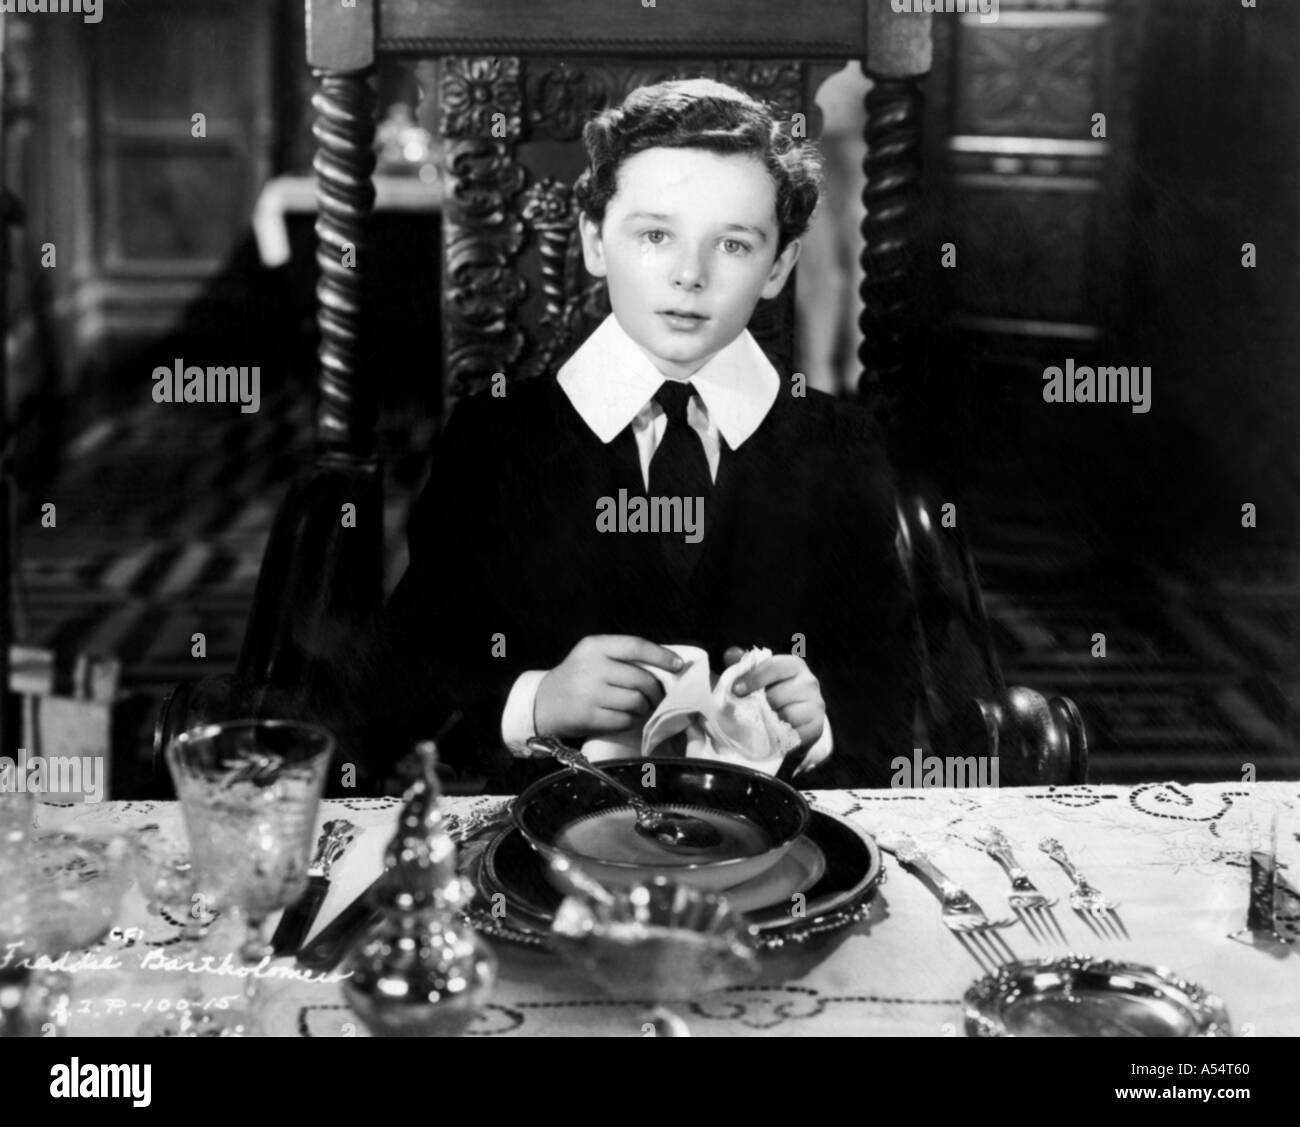 Little Lord Fauntleroy High Resolution Stock Photography And Images Alamy